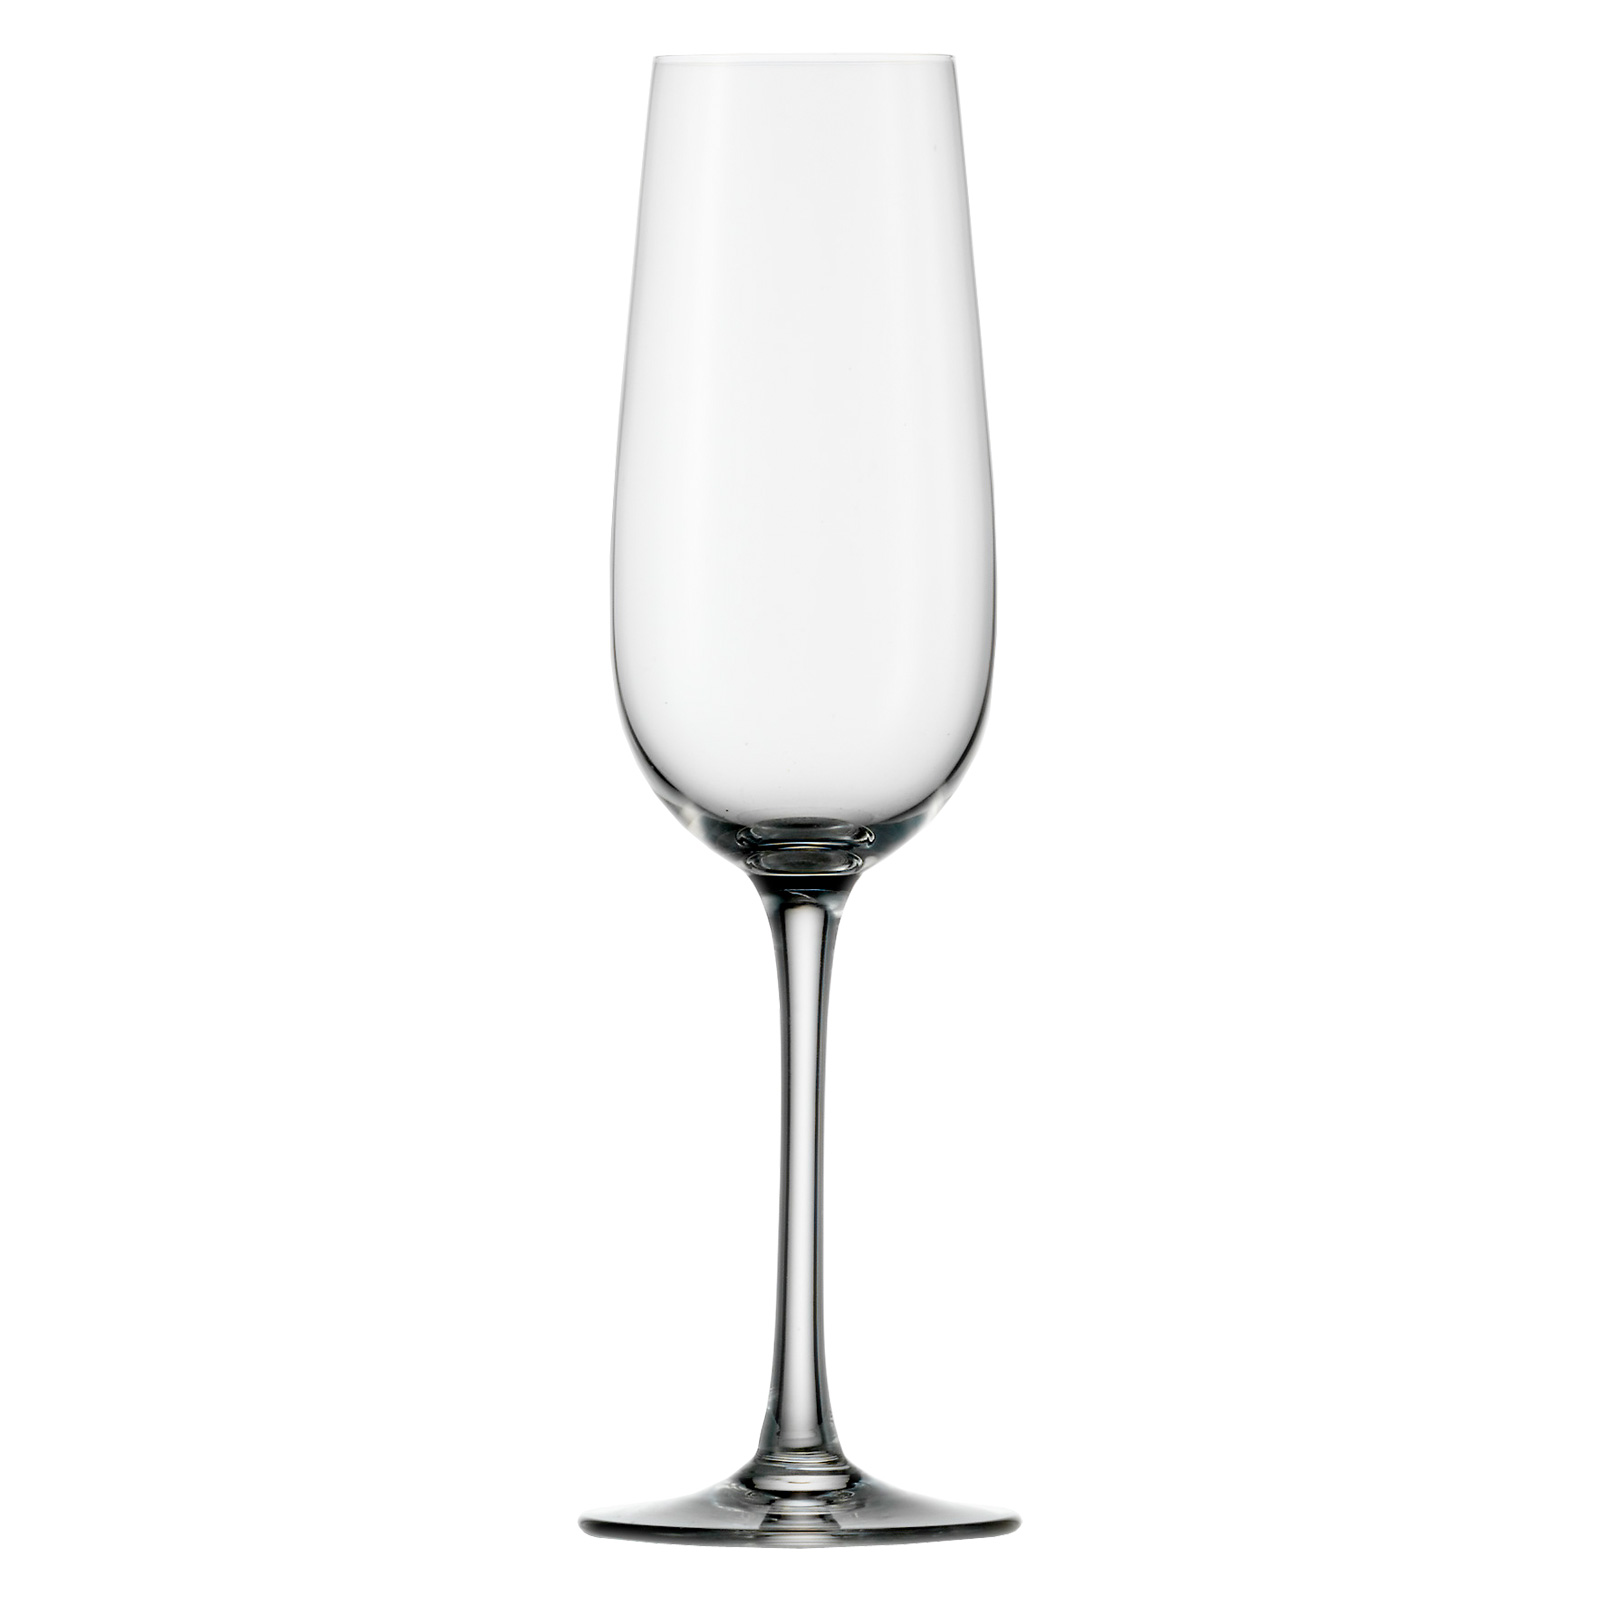 Set of 6 Weinland Champagne Flutes by Stolzle